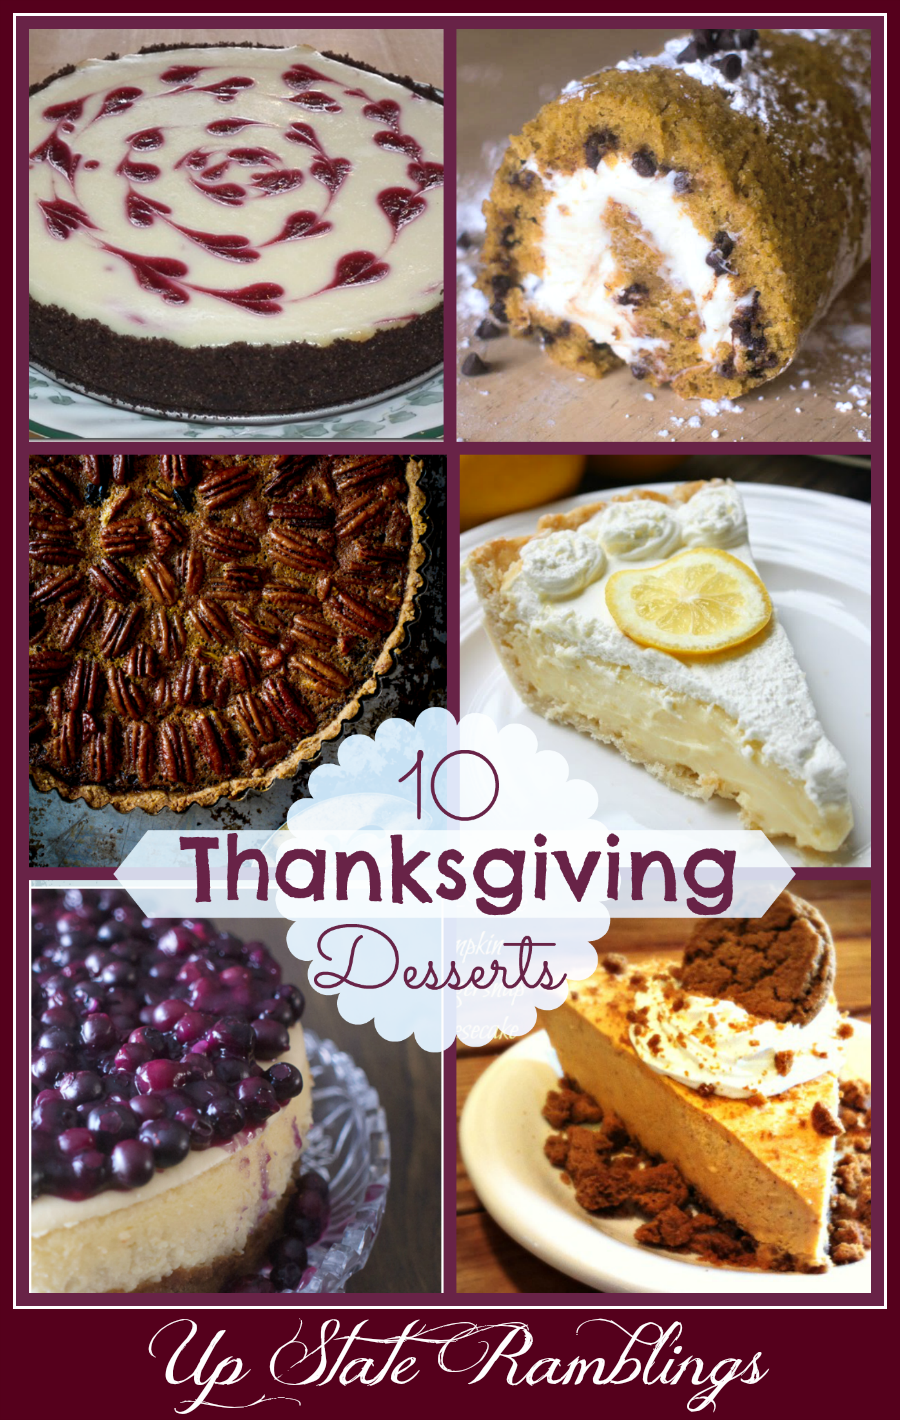 thanksgiving-desserts from Up State Ramblings